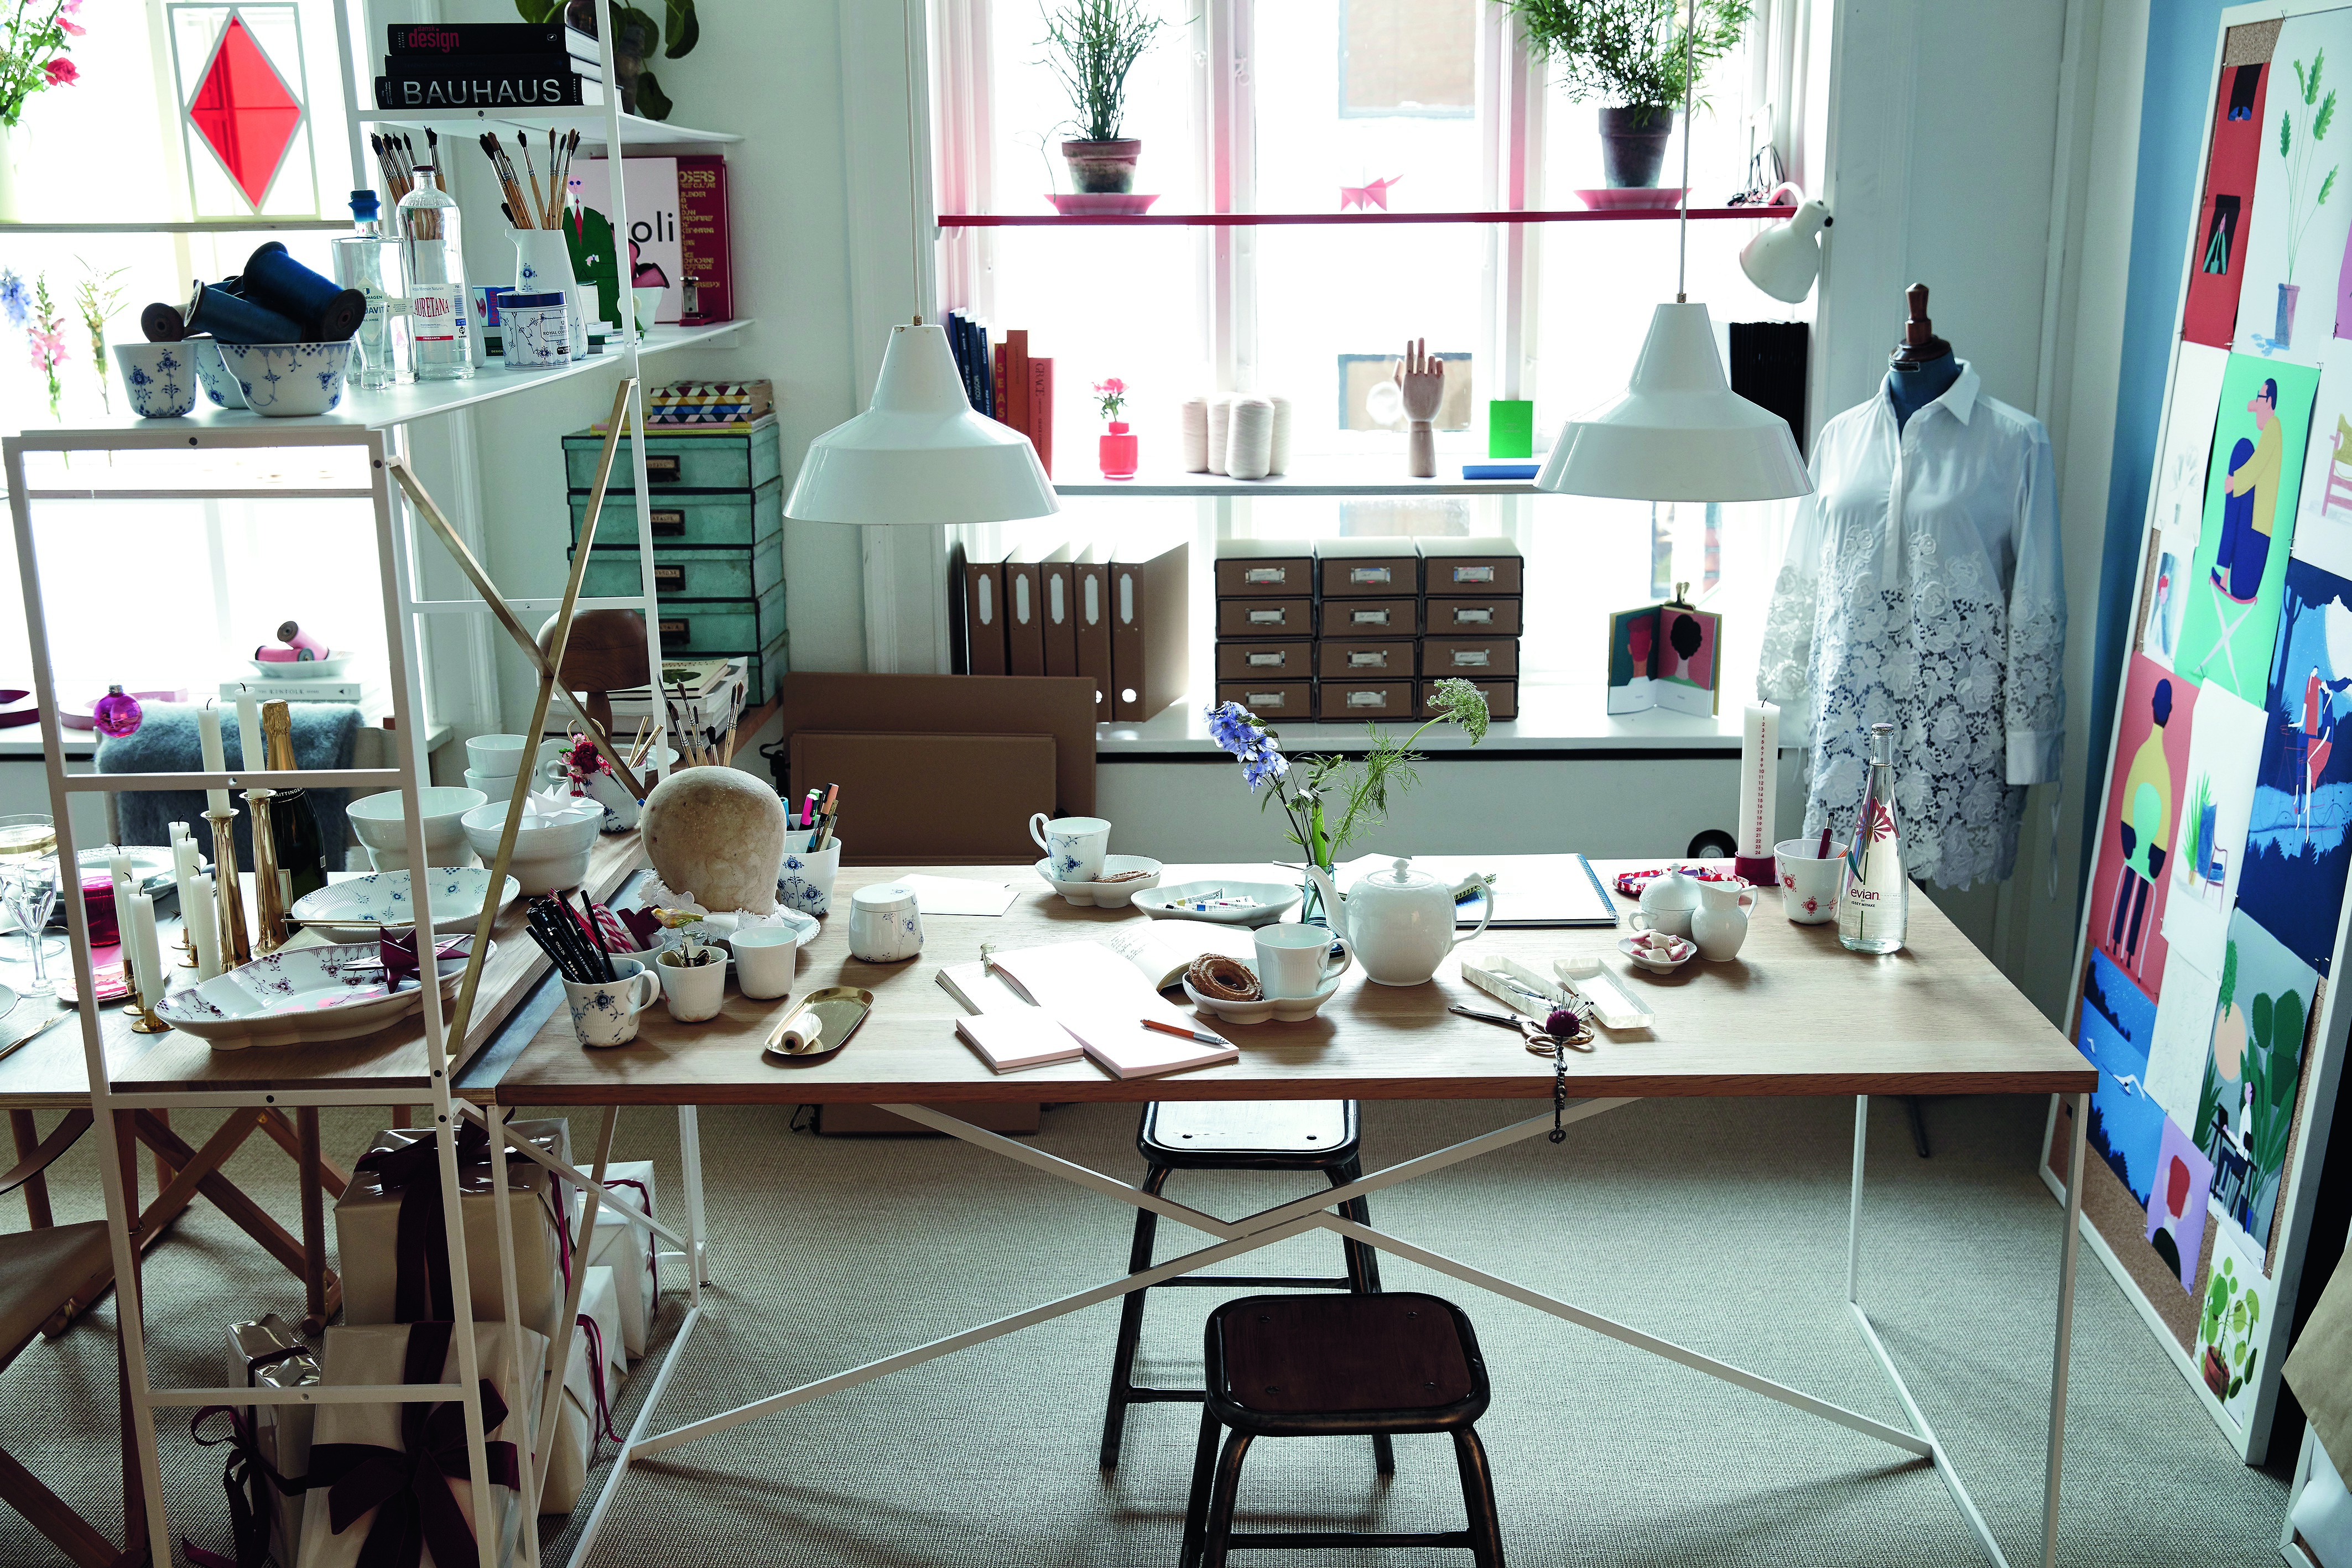 fashionable Christmas - Christmas in the atelier is Cecilie Bahnsen's holiday and work combination fantasy uses White Flute Half Lace China with Elements pieces for every day and a special occasion - Royal Copenhagen via Atticmag